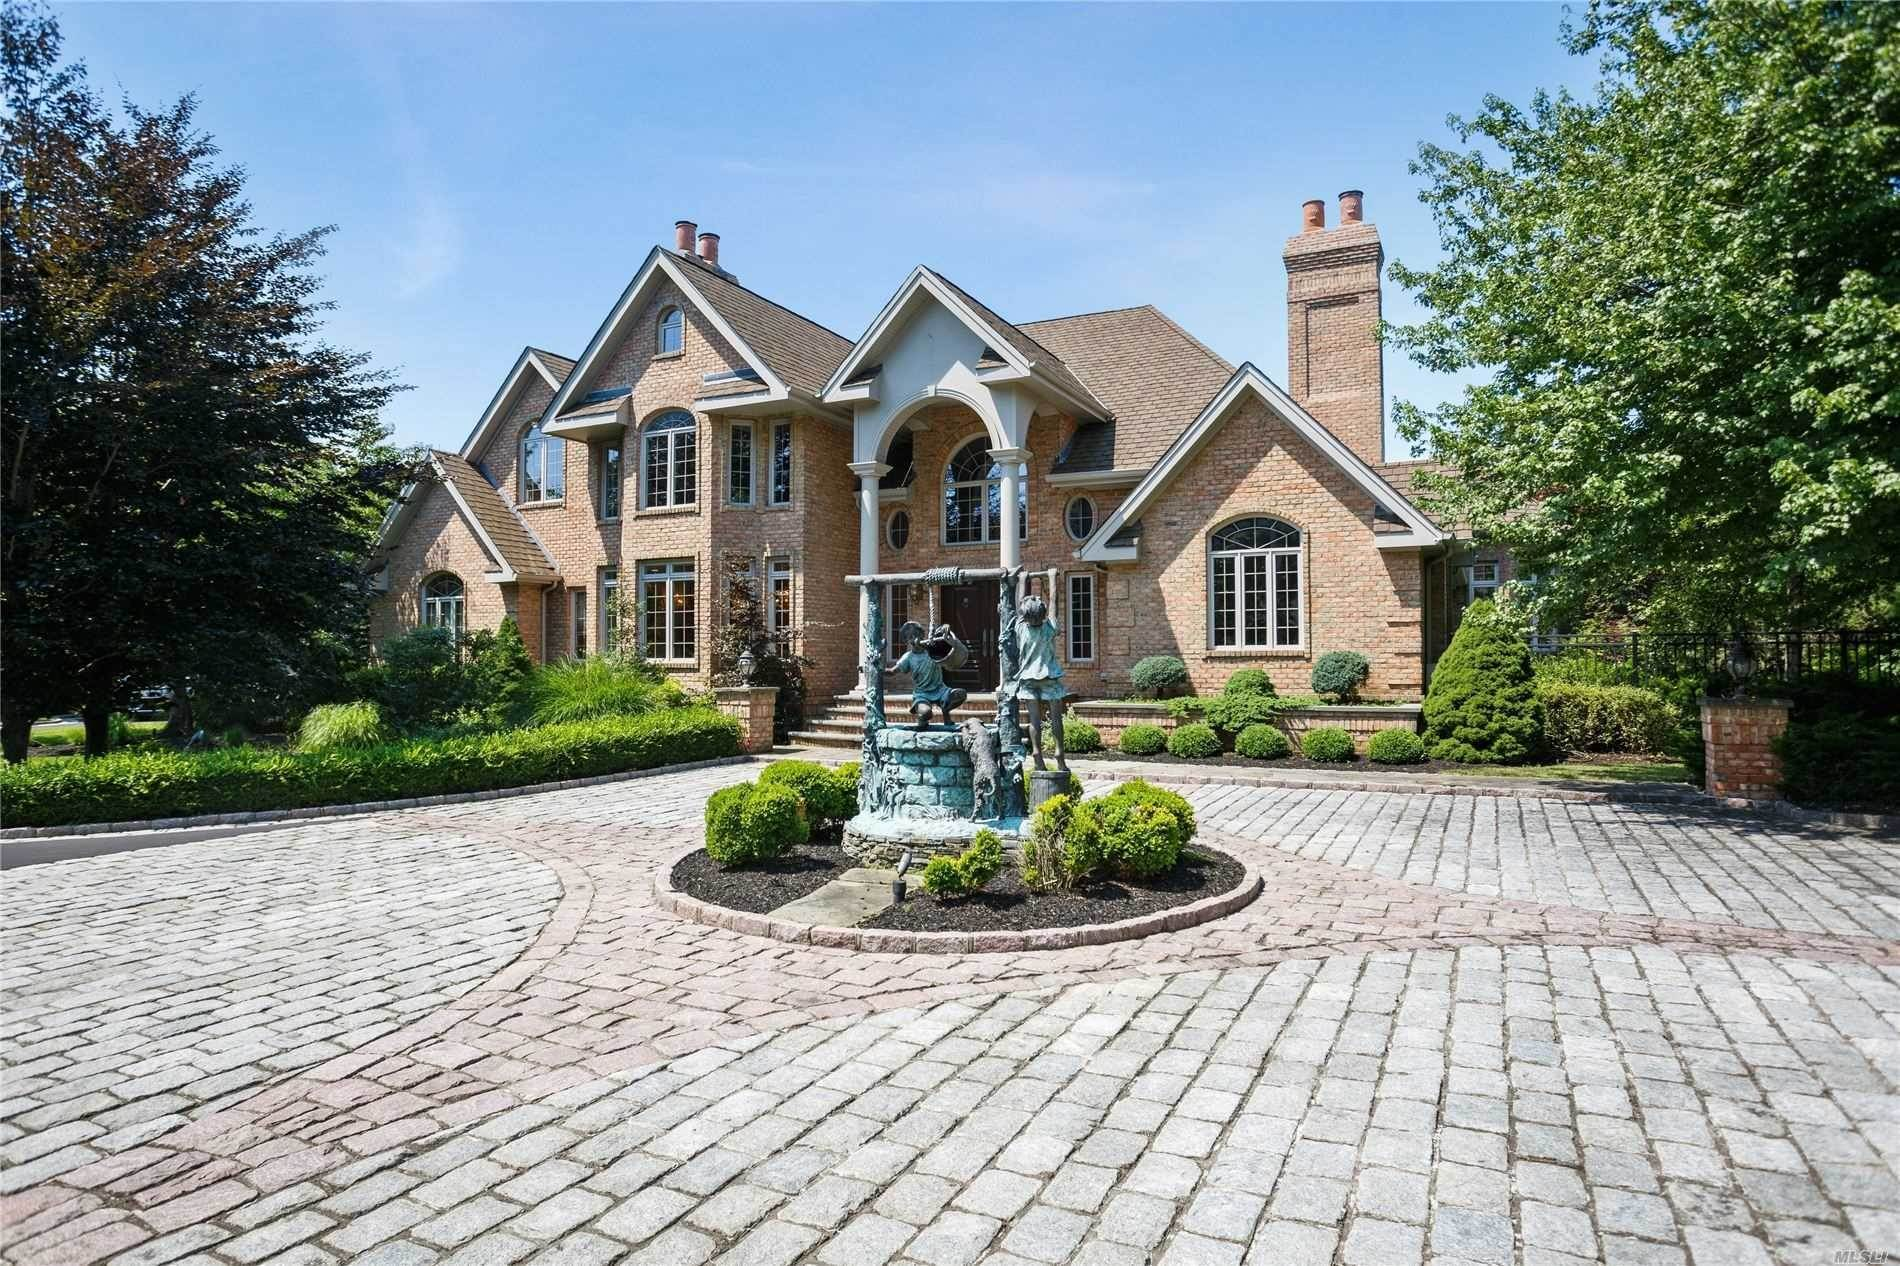 Residential for Sale at 26 The Helm, East Islip, NY 11730 East Islip, New York 11730 United States